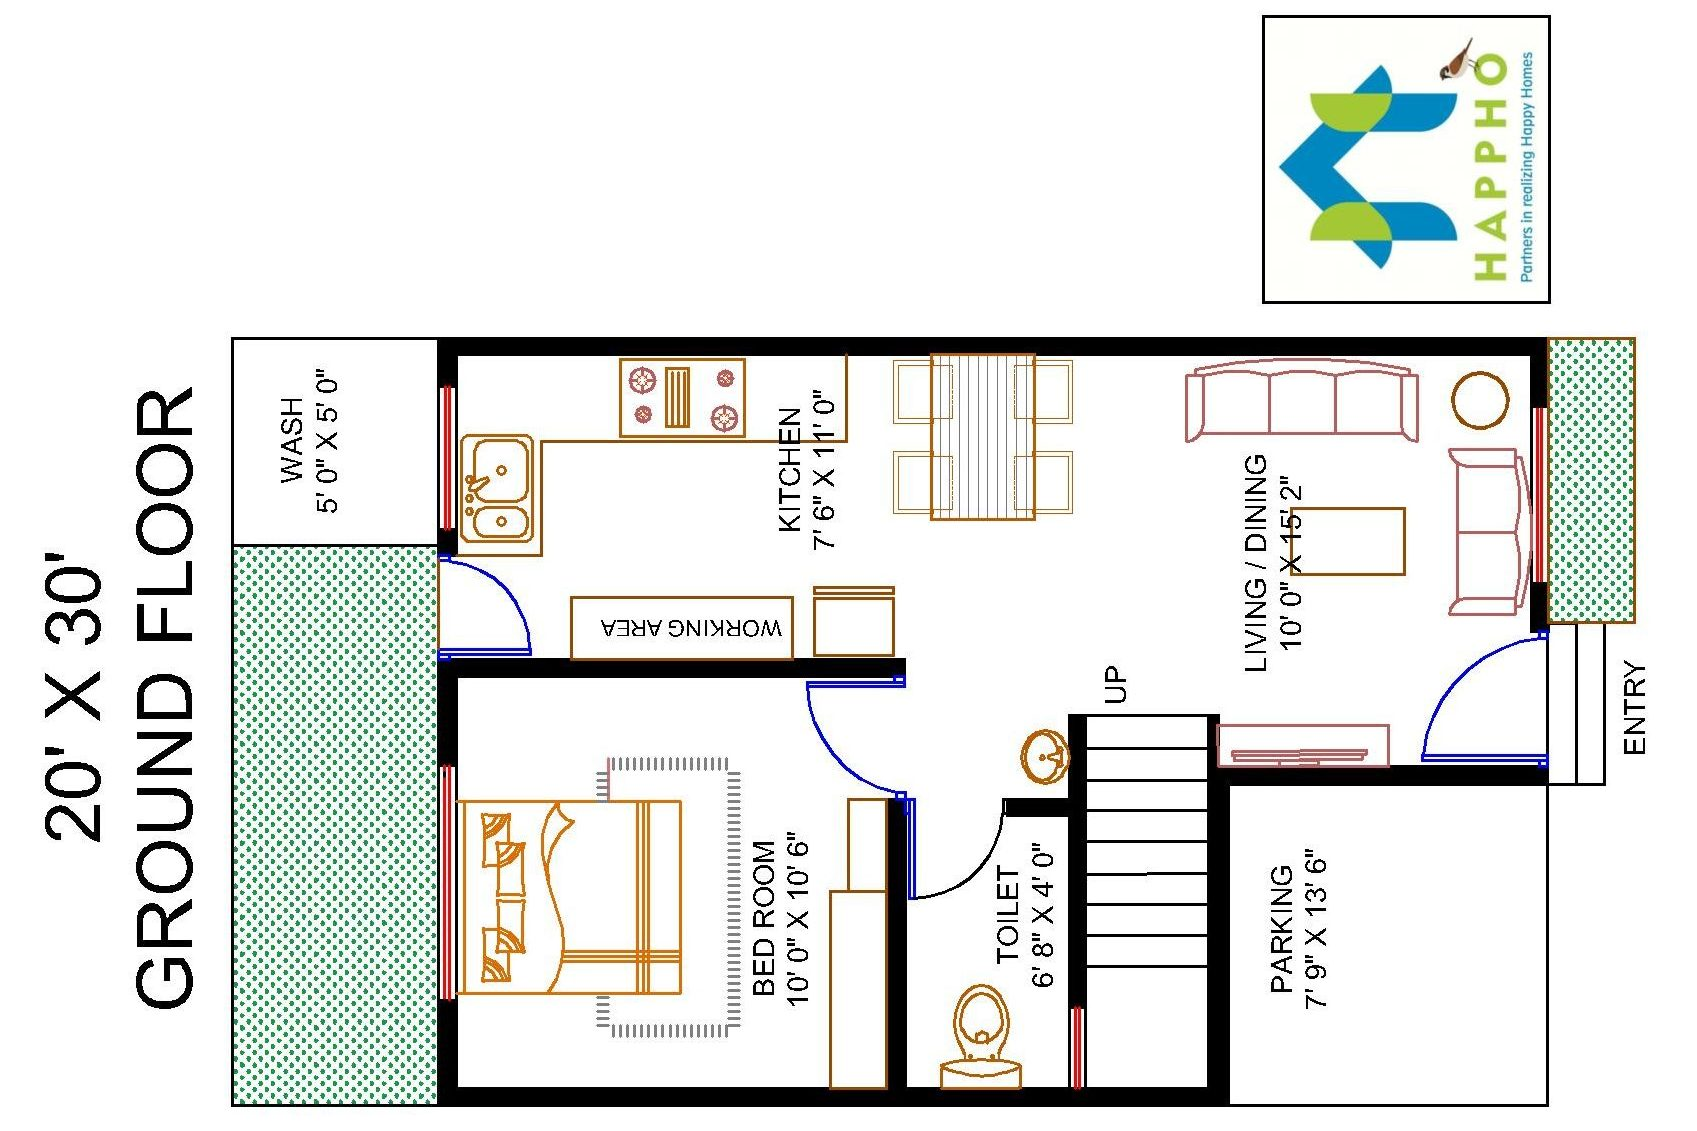 1-BHK Floor Plan for 20 X 30 Plot (600 Square Feet/67 SquareYards ...